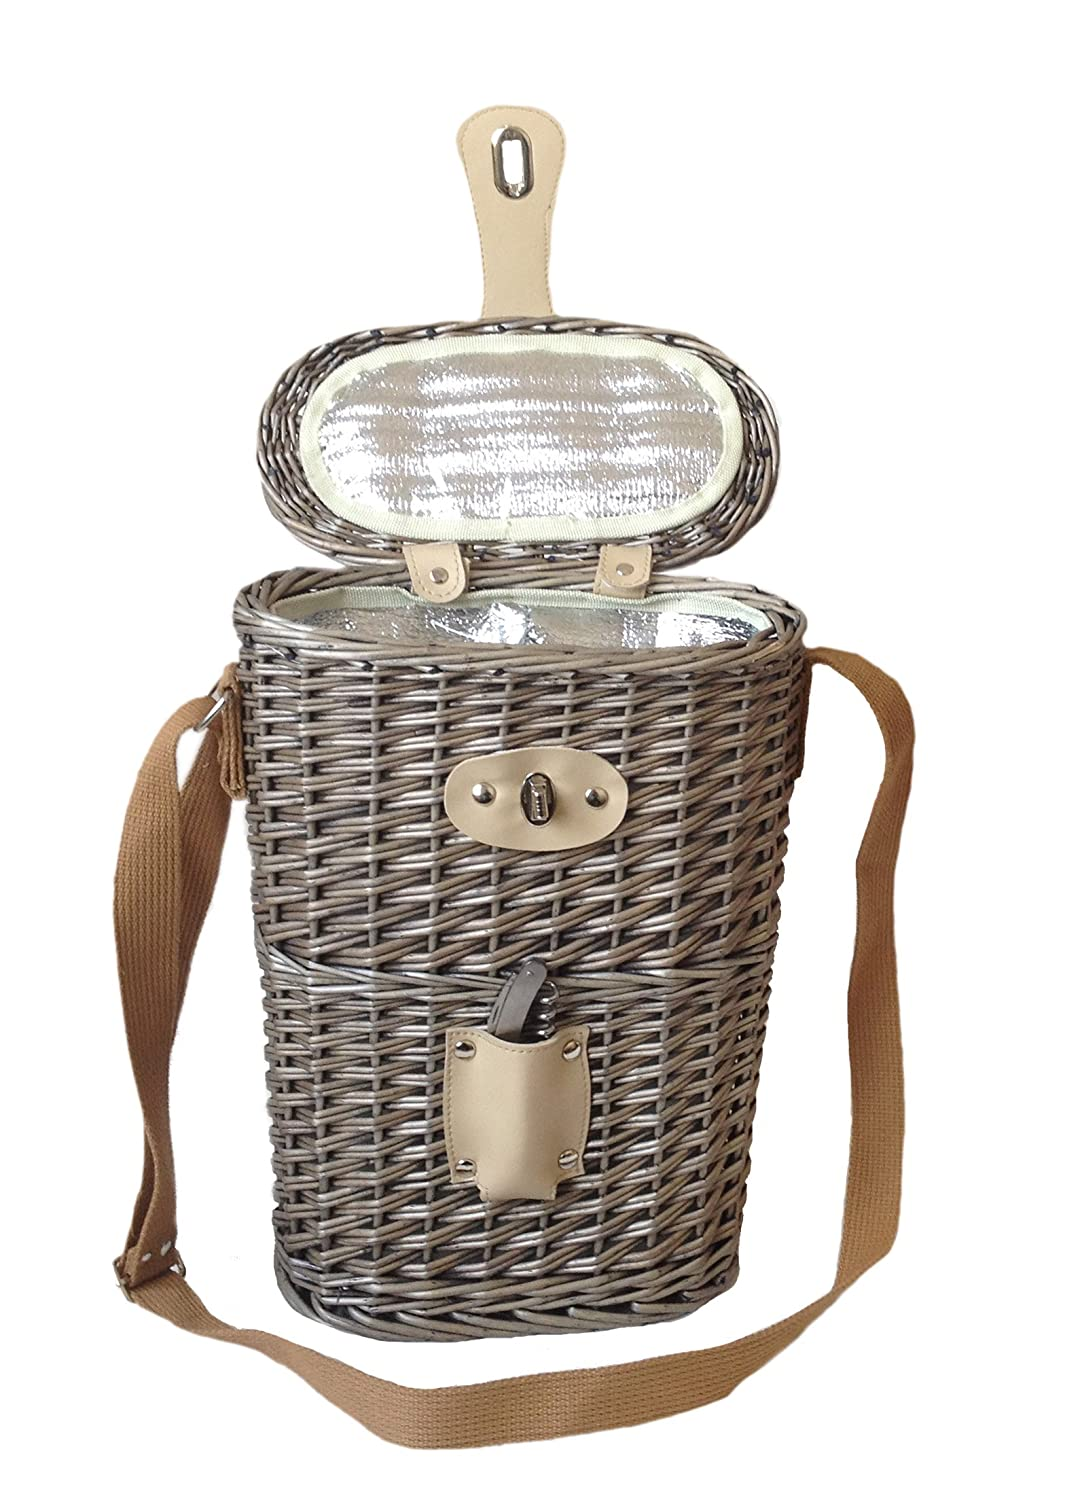 2 Bottle Chilled Carry Wicker Storage Basket with Bottle Opener - Gift ideas for Christmas, Birthday, Wedding, Anniversary Fine Gifts UK